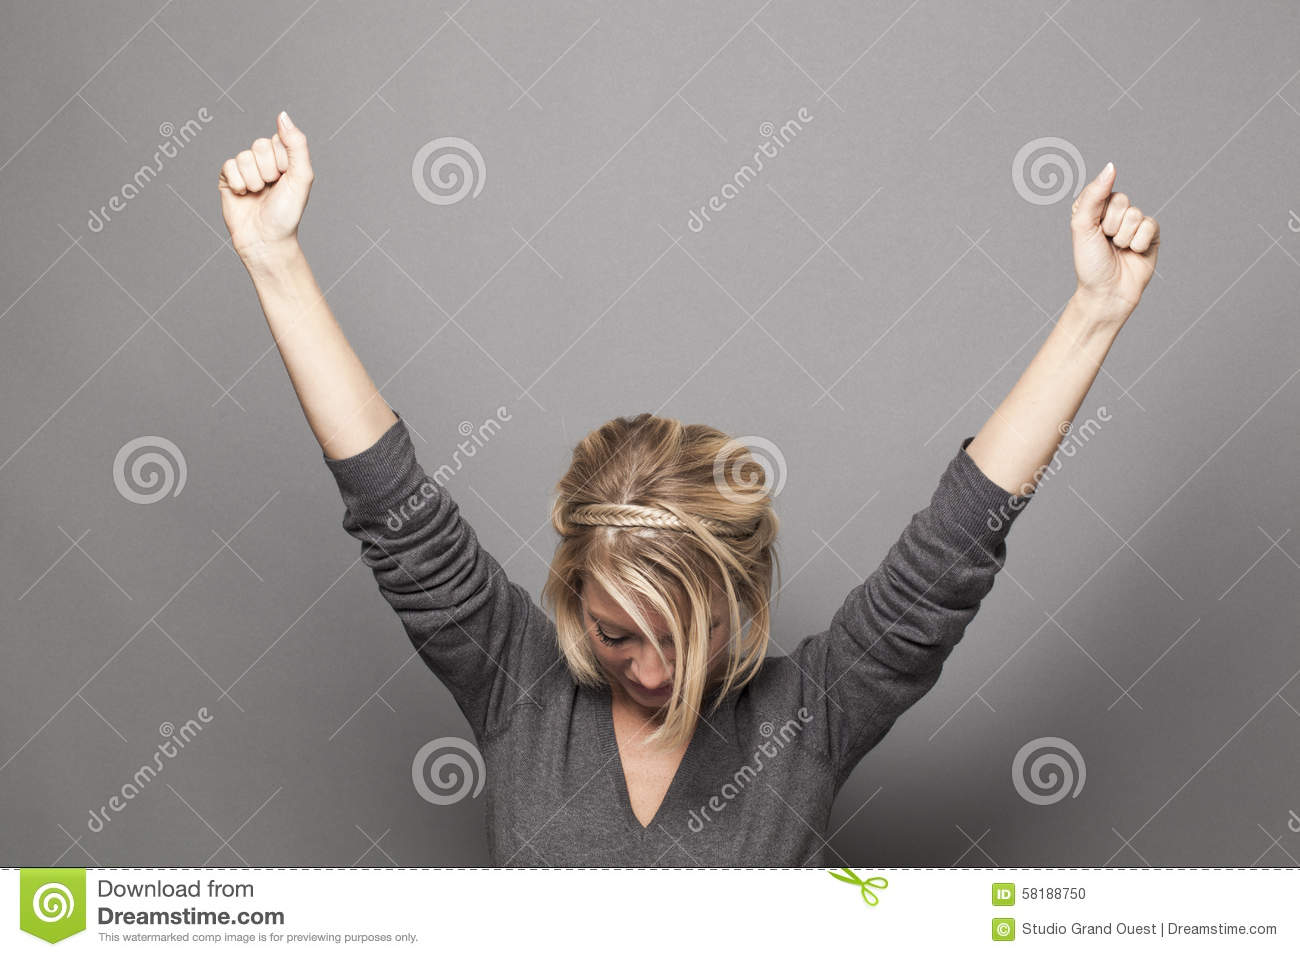 Humble 20s blonde woman raising hands for victory